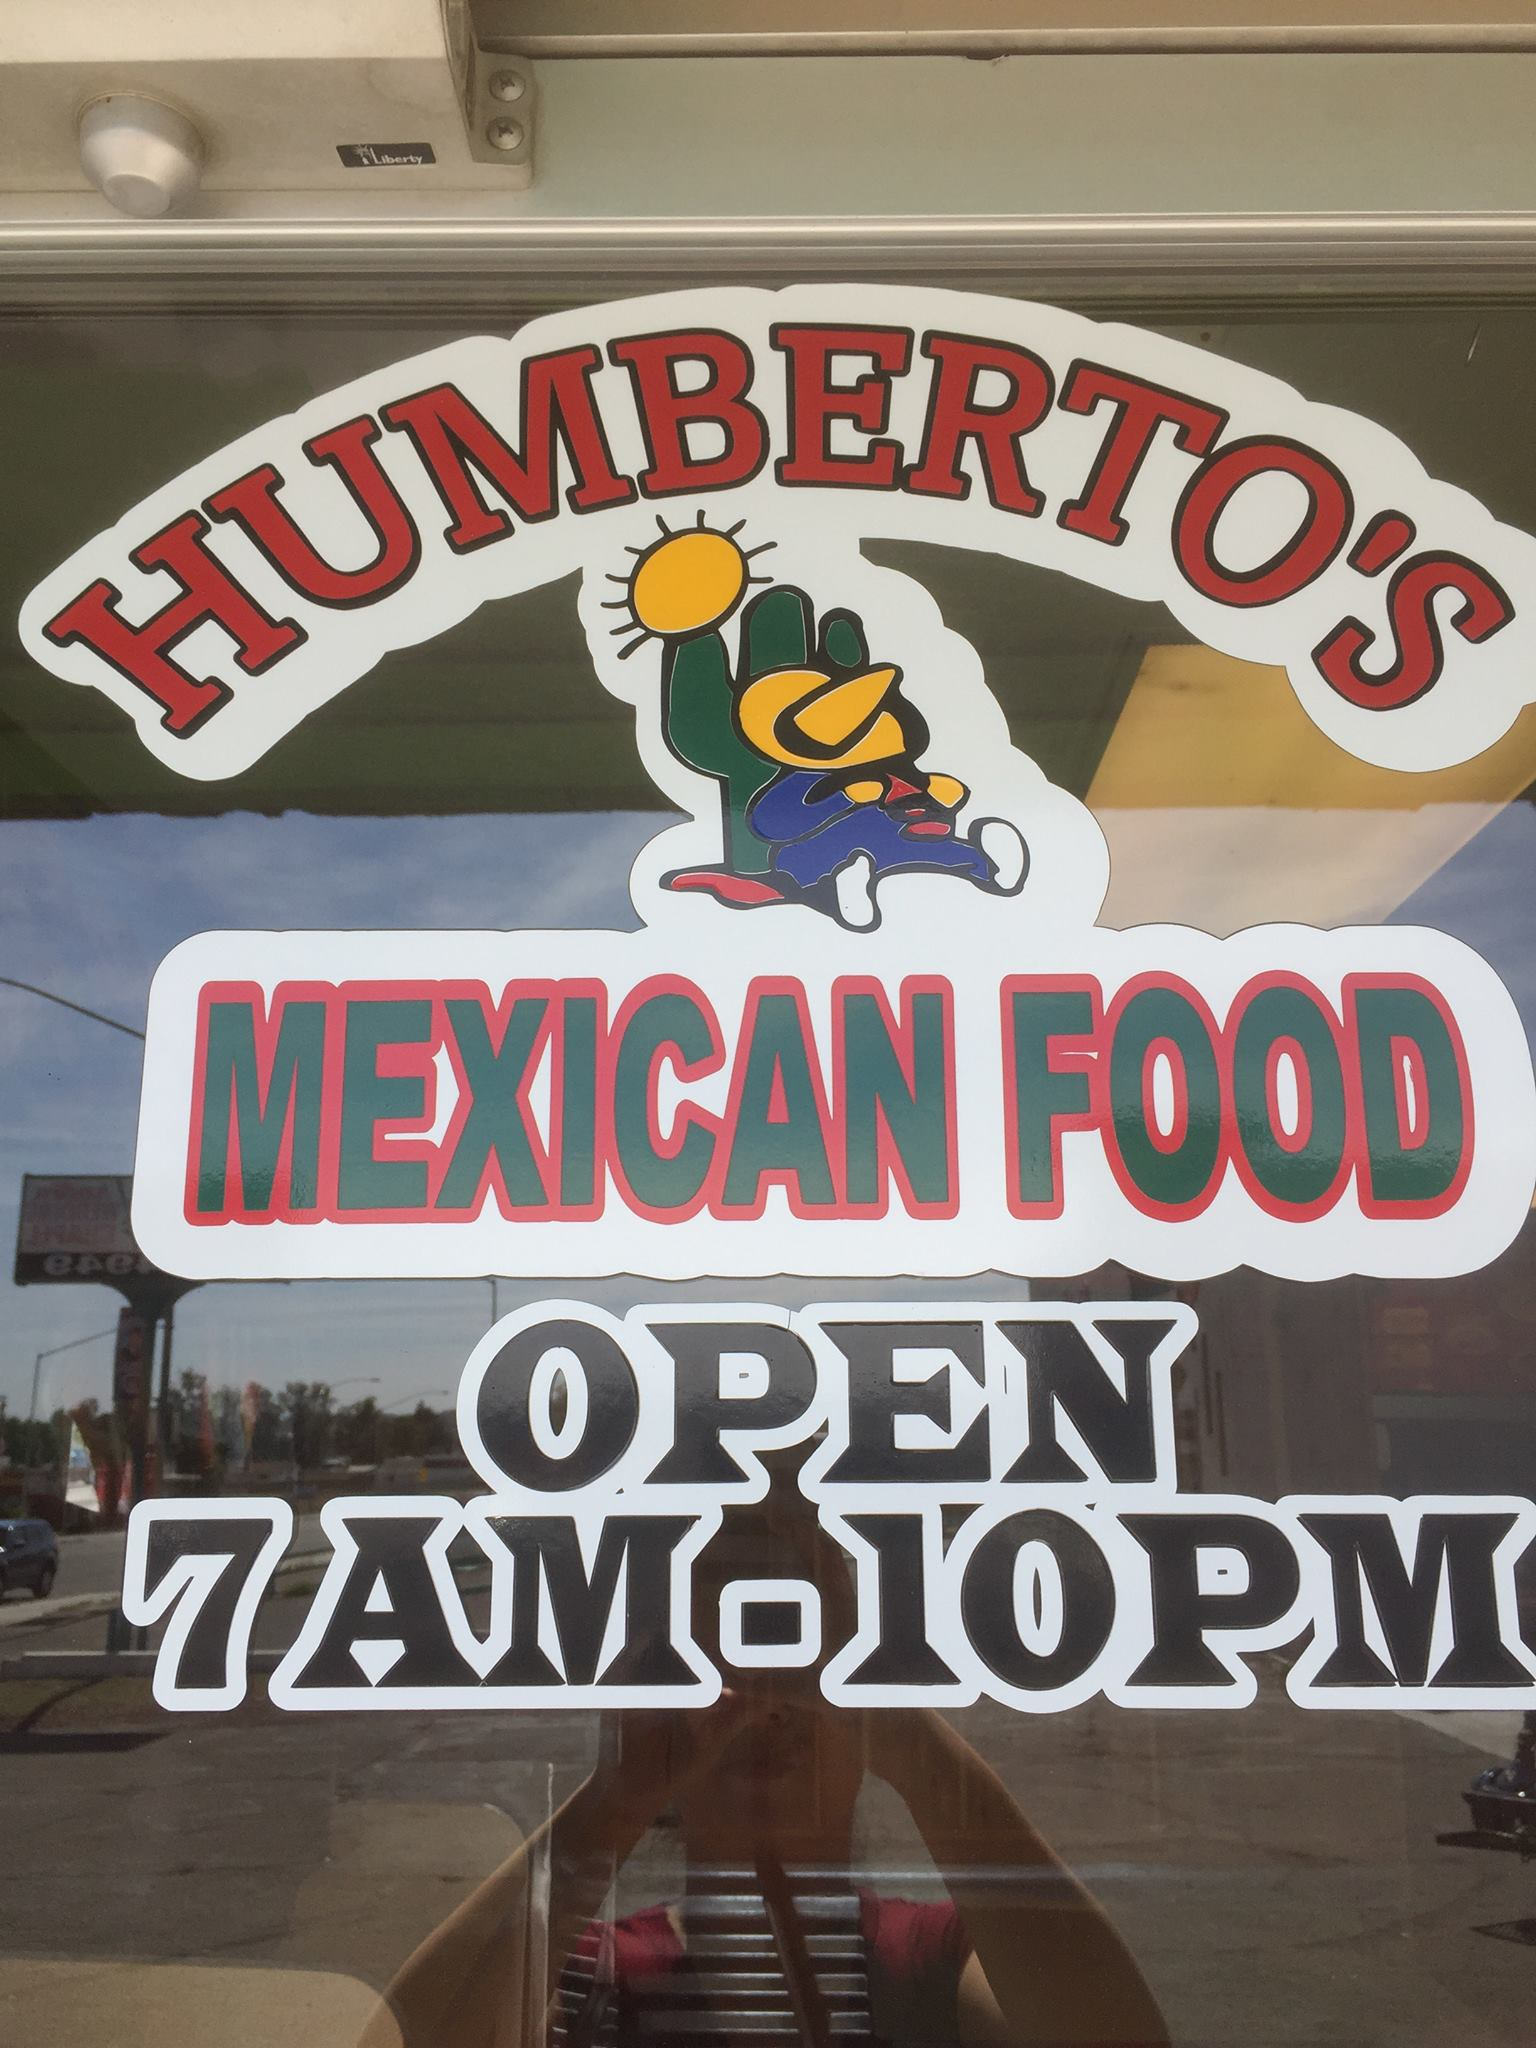 Humberto's Mexican Food logo